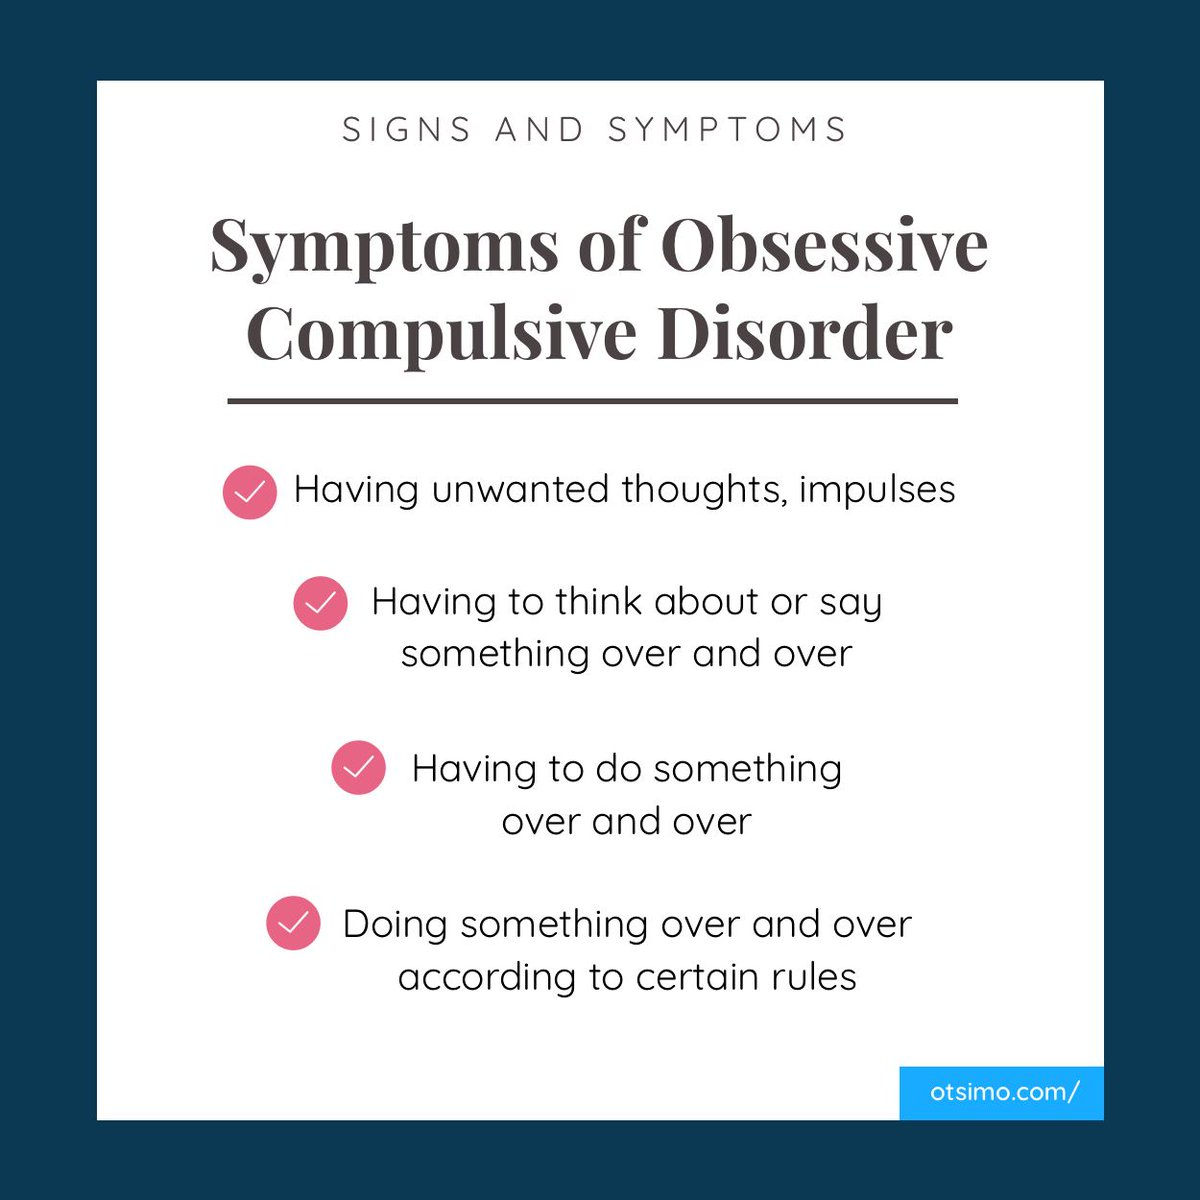 the description of the symptoms characteristics and treatment of obsessive compulsive disorder ocd Obsessive-compulsive disorder (ocd) is an anxiety disorder characterized by uncontrollable, unwanted thoughts and ritualized, repetitive most people with ocd fall into one of the following categories: washers are afraid of contamination they usually have cleaning or hand-washing.